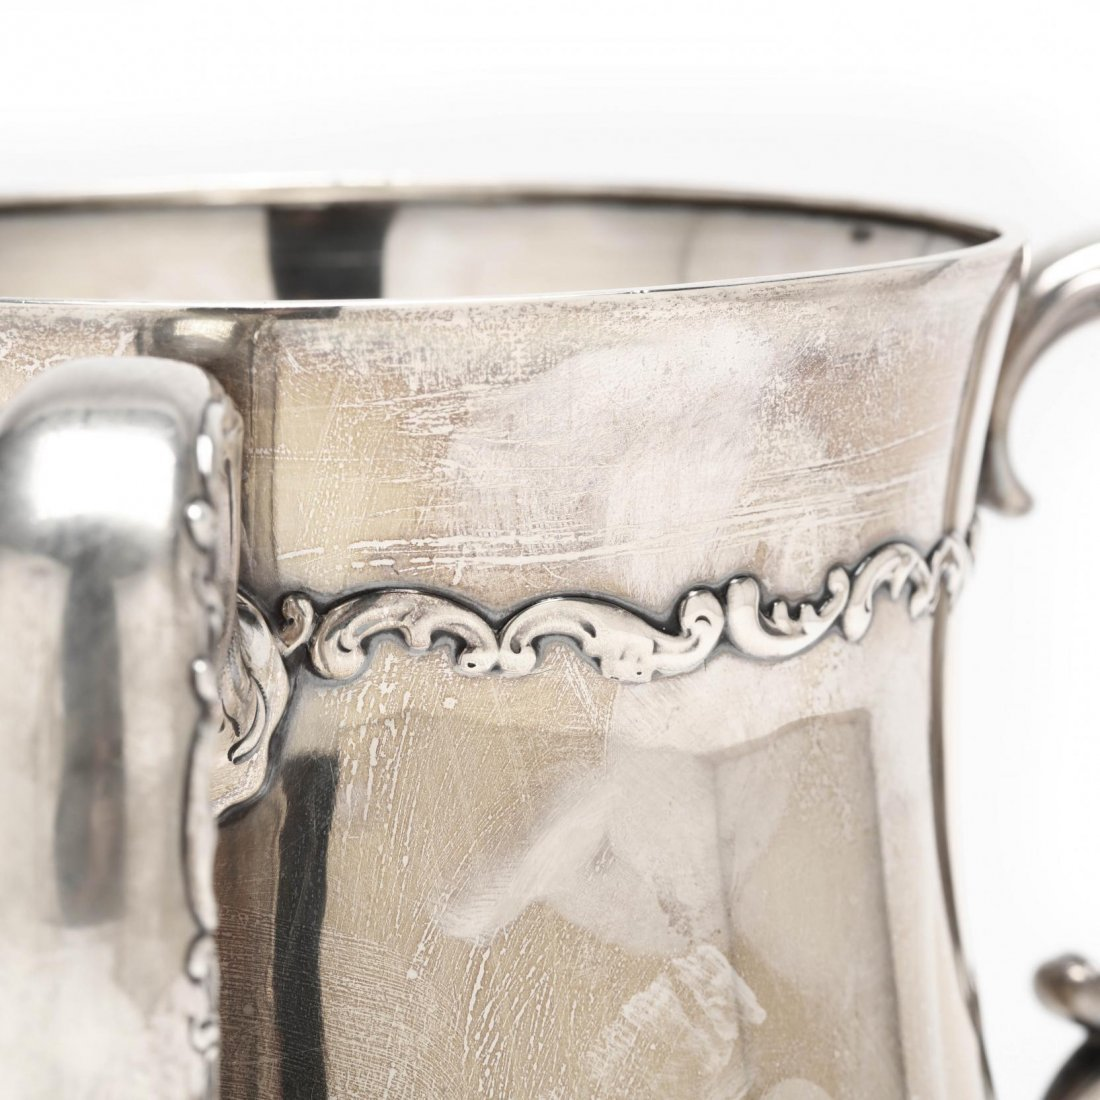 A Sterling Silver Loving Cup by Whiting Mfg. Co. - 2